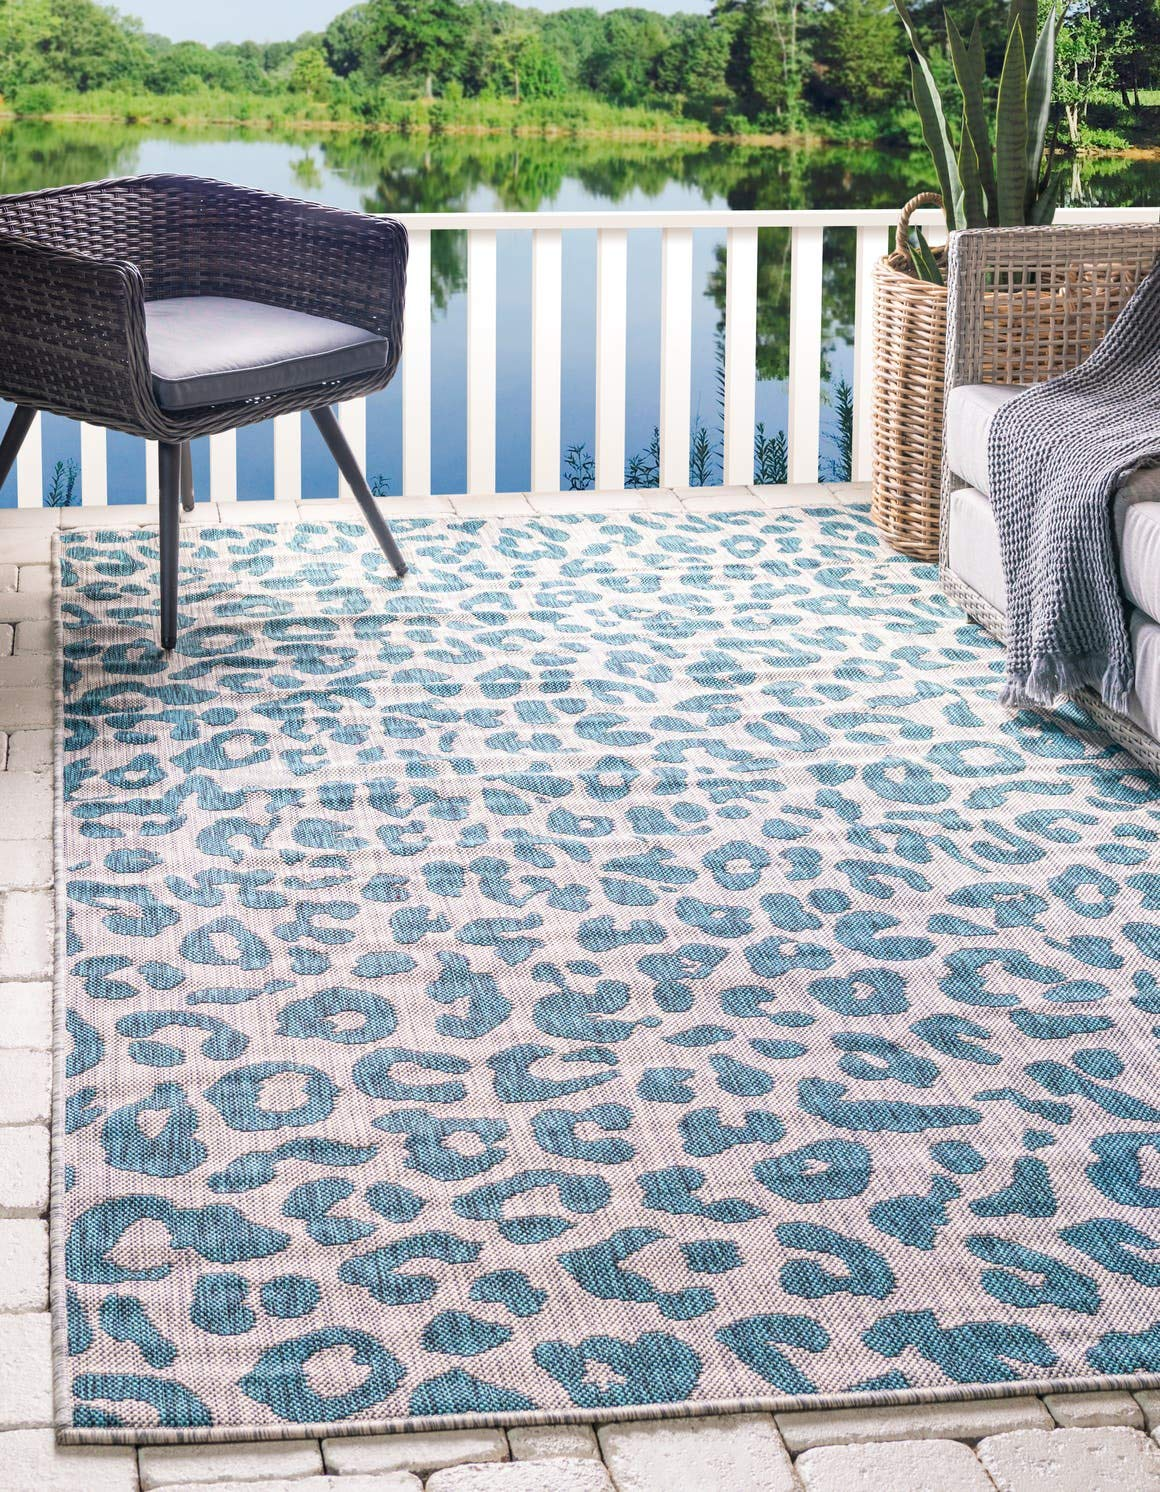 Unique Loom Outdoor Safari Collection Leopard Animal Print Transitional Indoor and Outdoor Flatweave Teal Area Rug 5 0 x 8 0